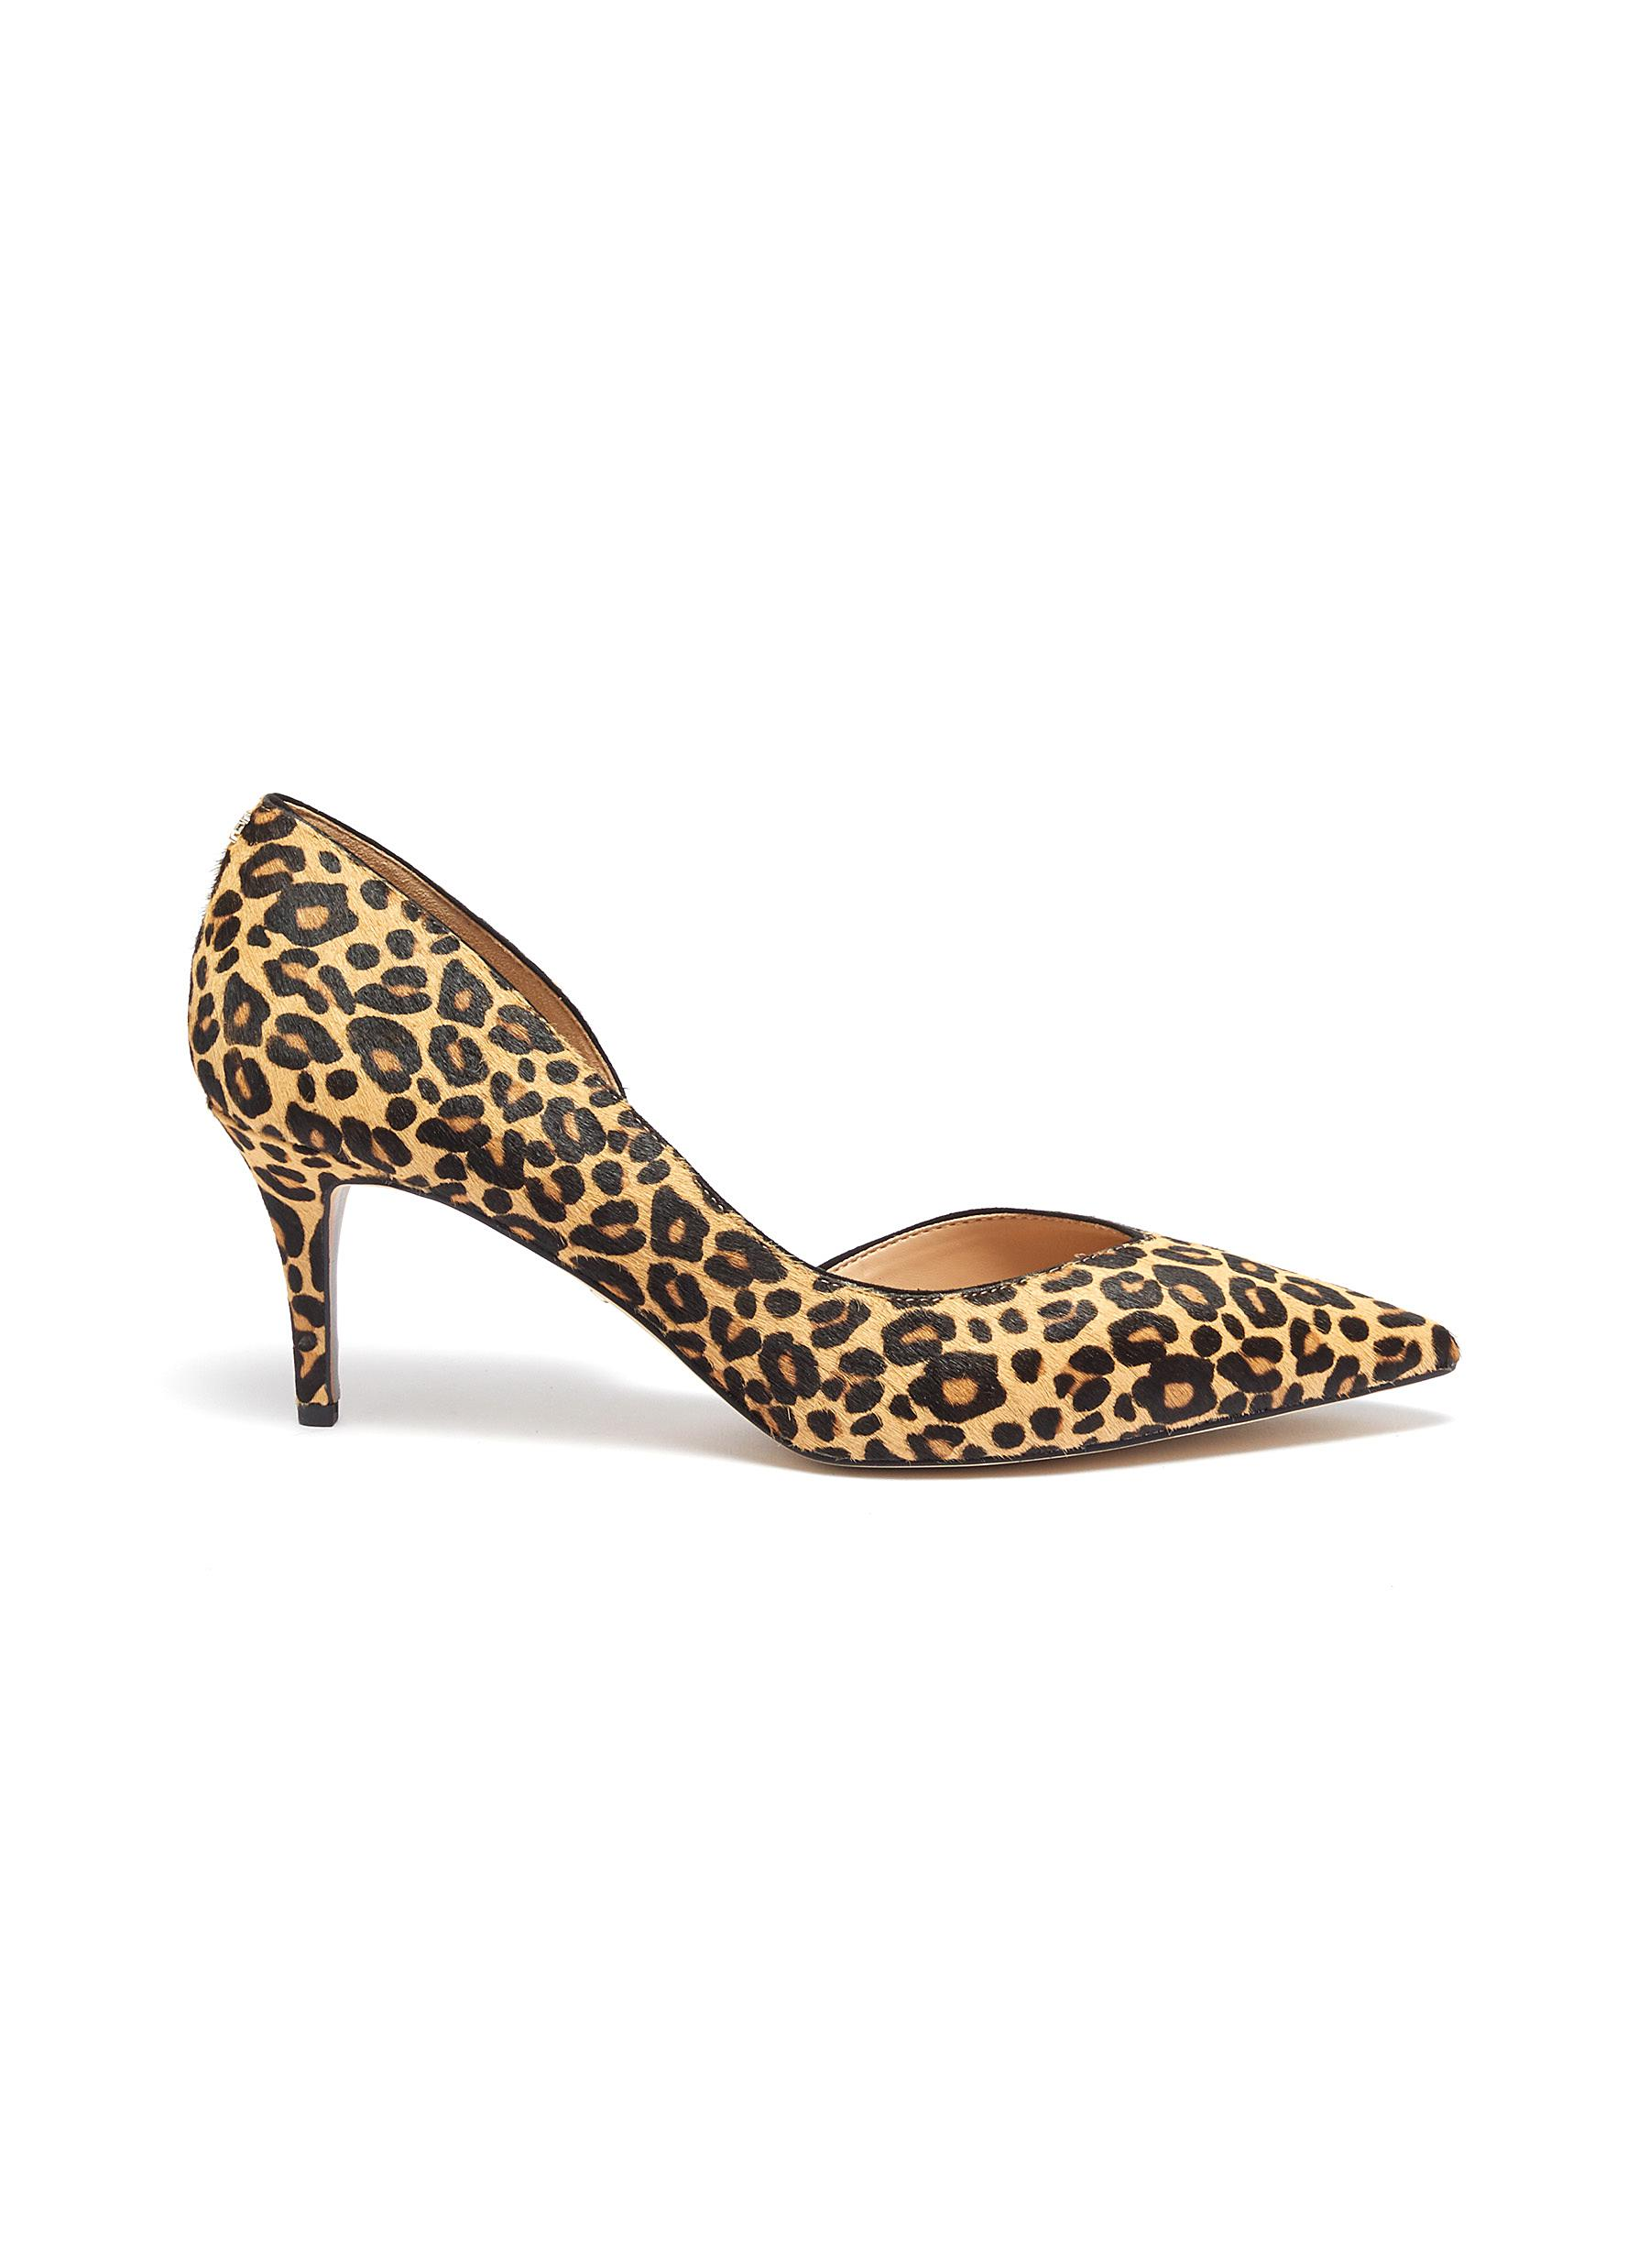 Jani leopard print cow hair dOrsay pumps by Sam Edelman